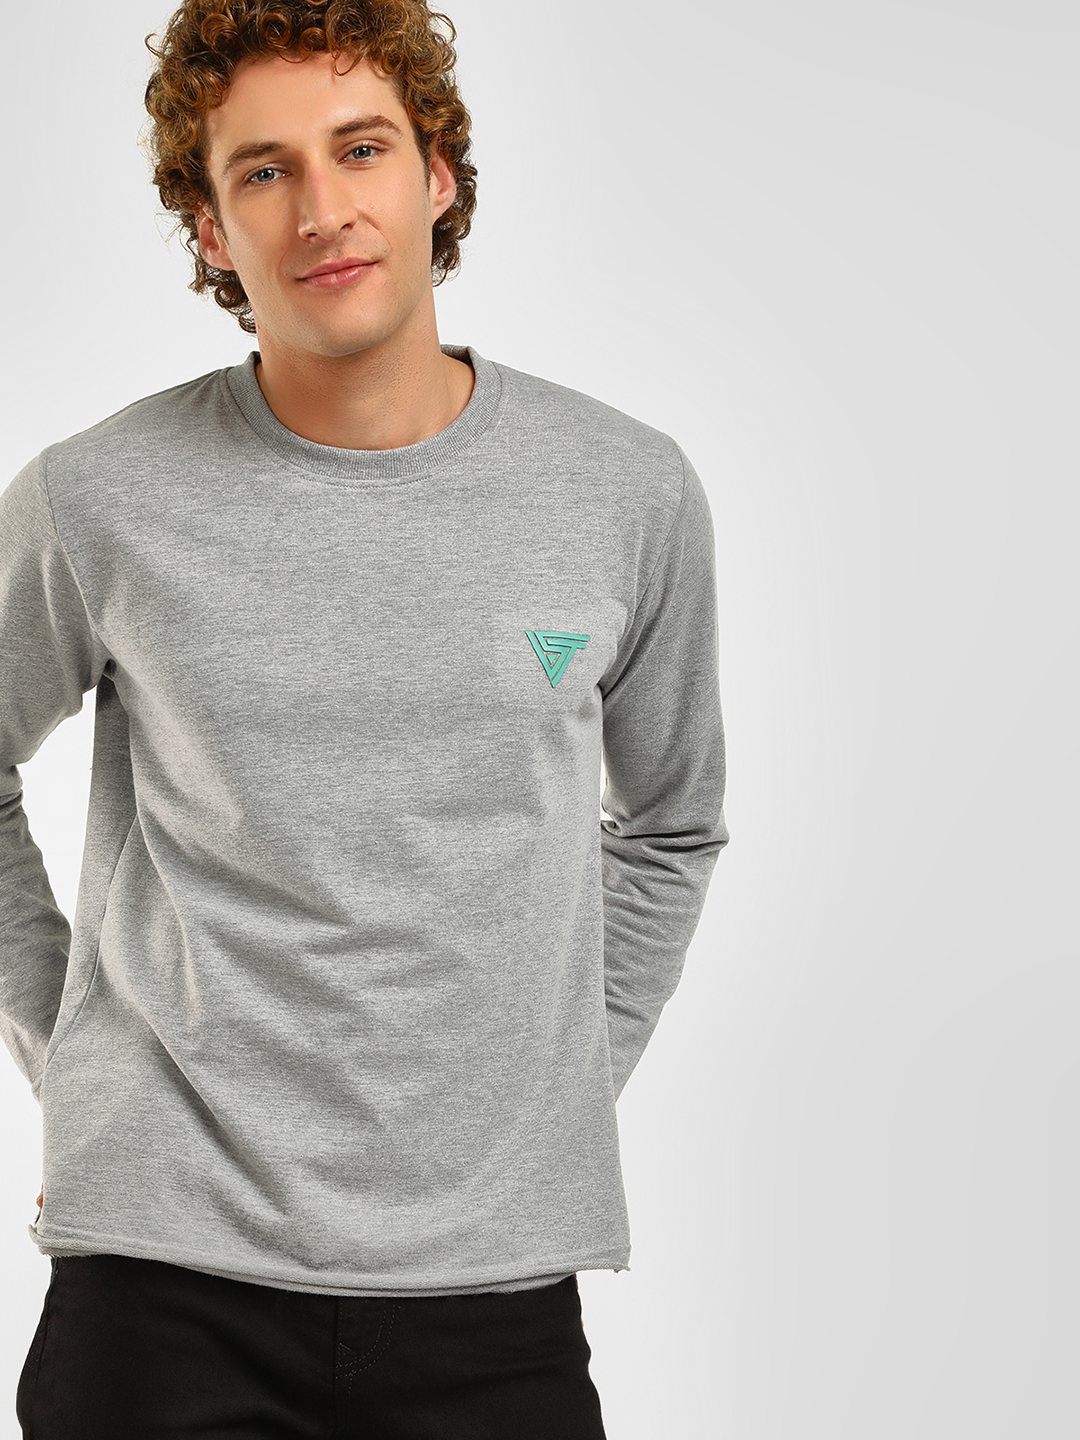 Blue Saint Grey Melange Crew Neck Sweatshirt 1